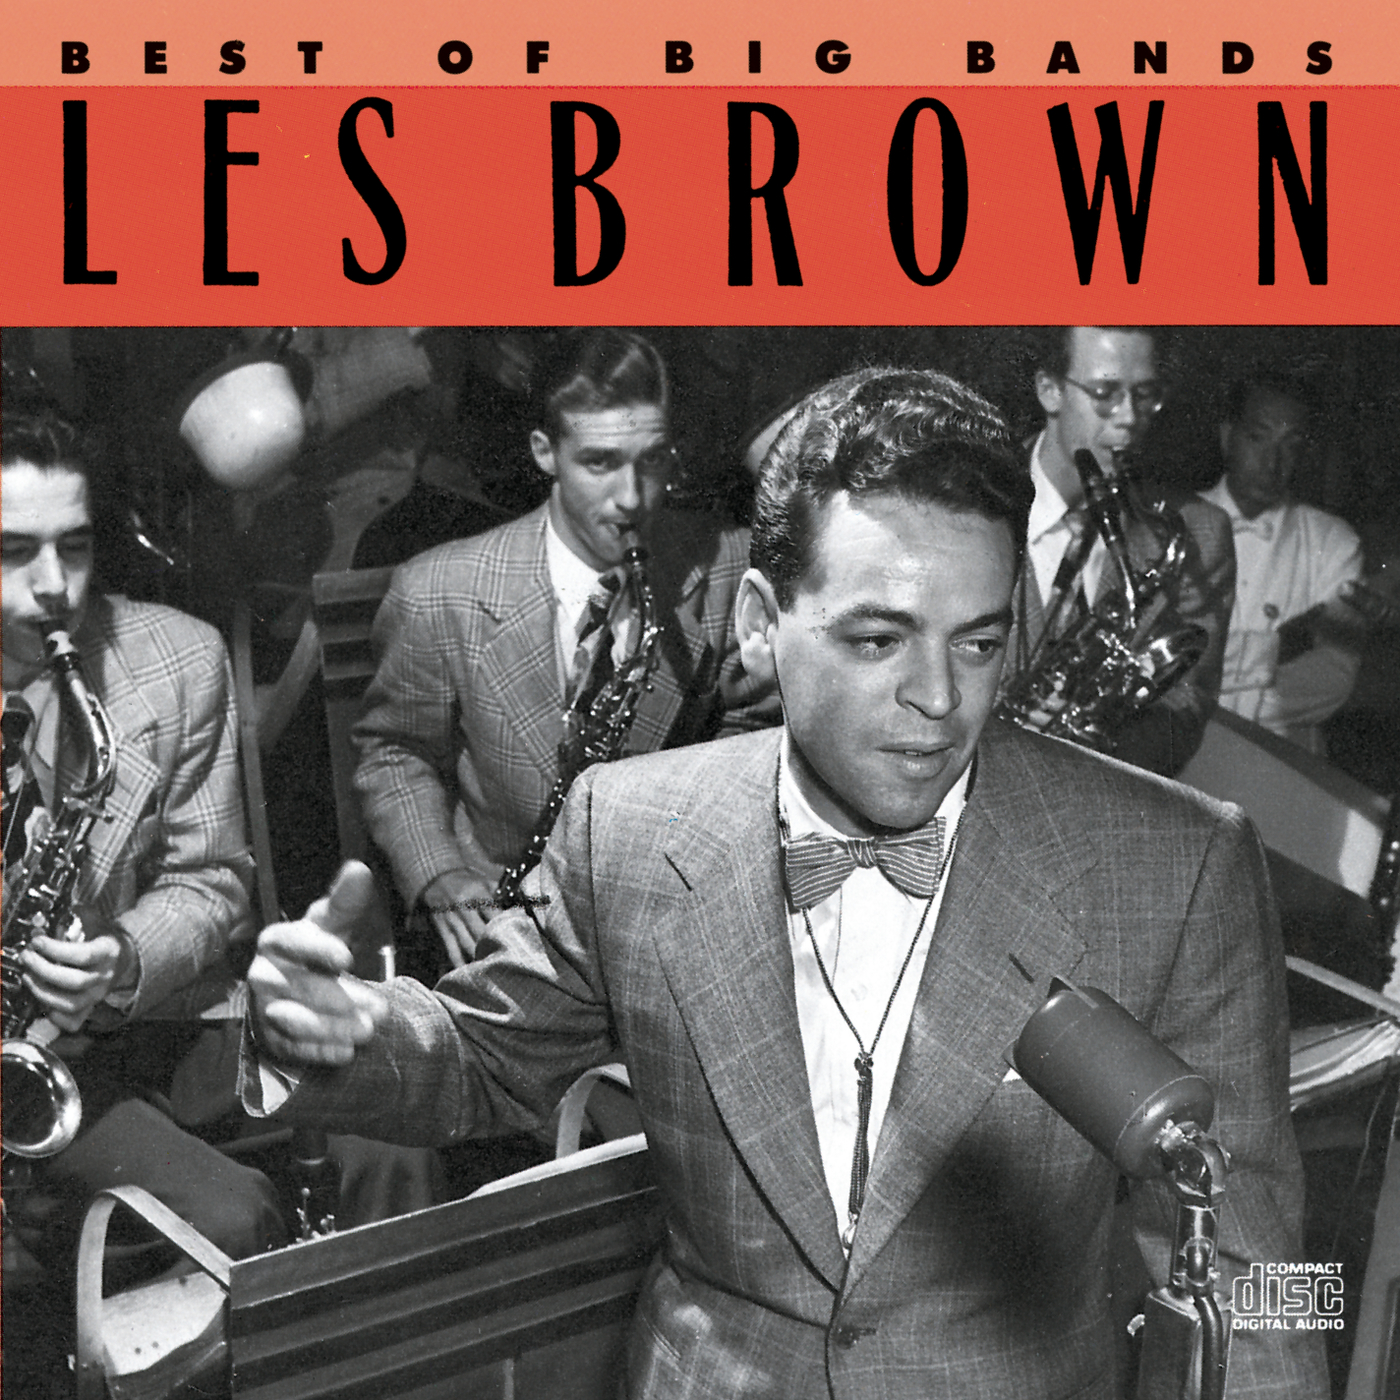 Best Of The Big Bands - Les Brown